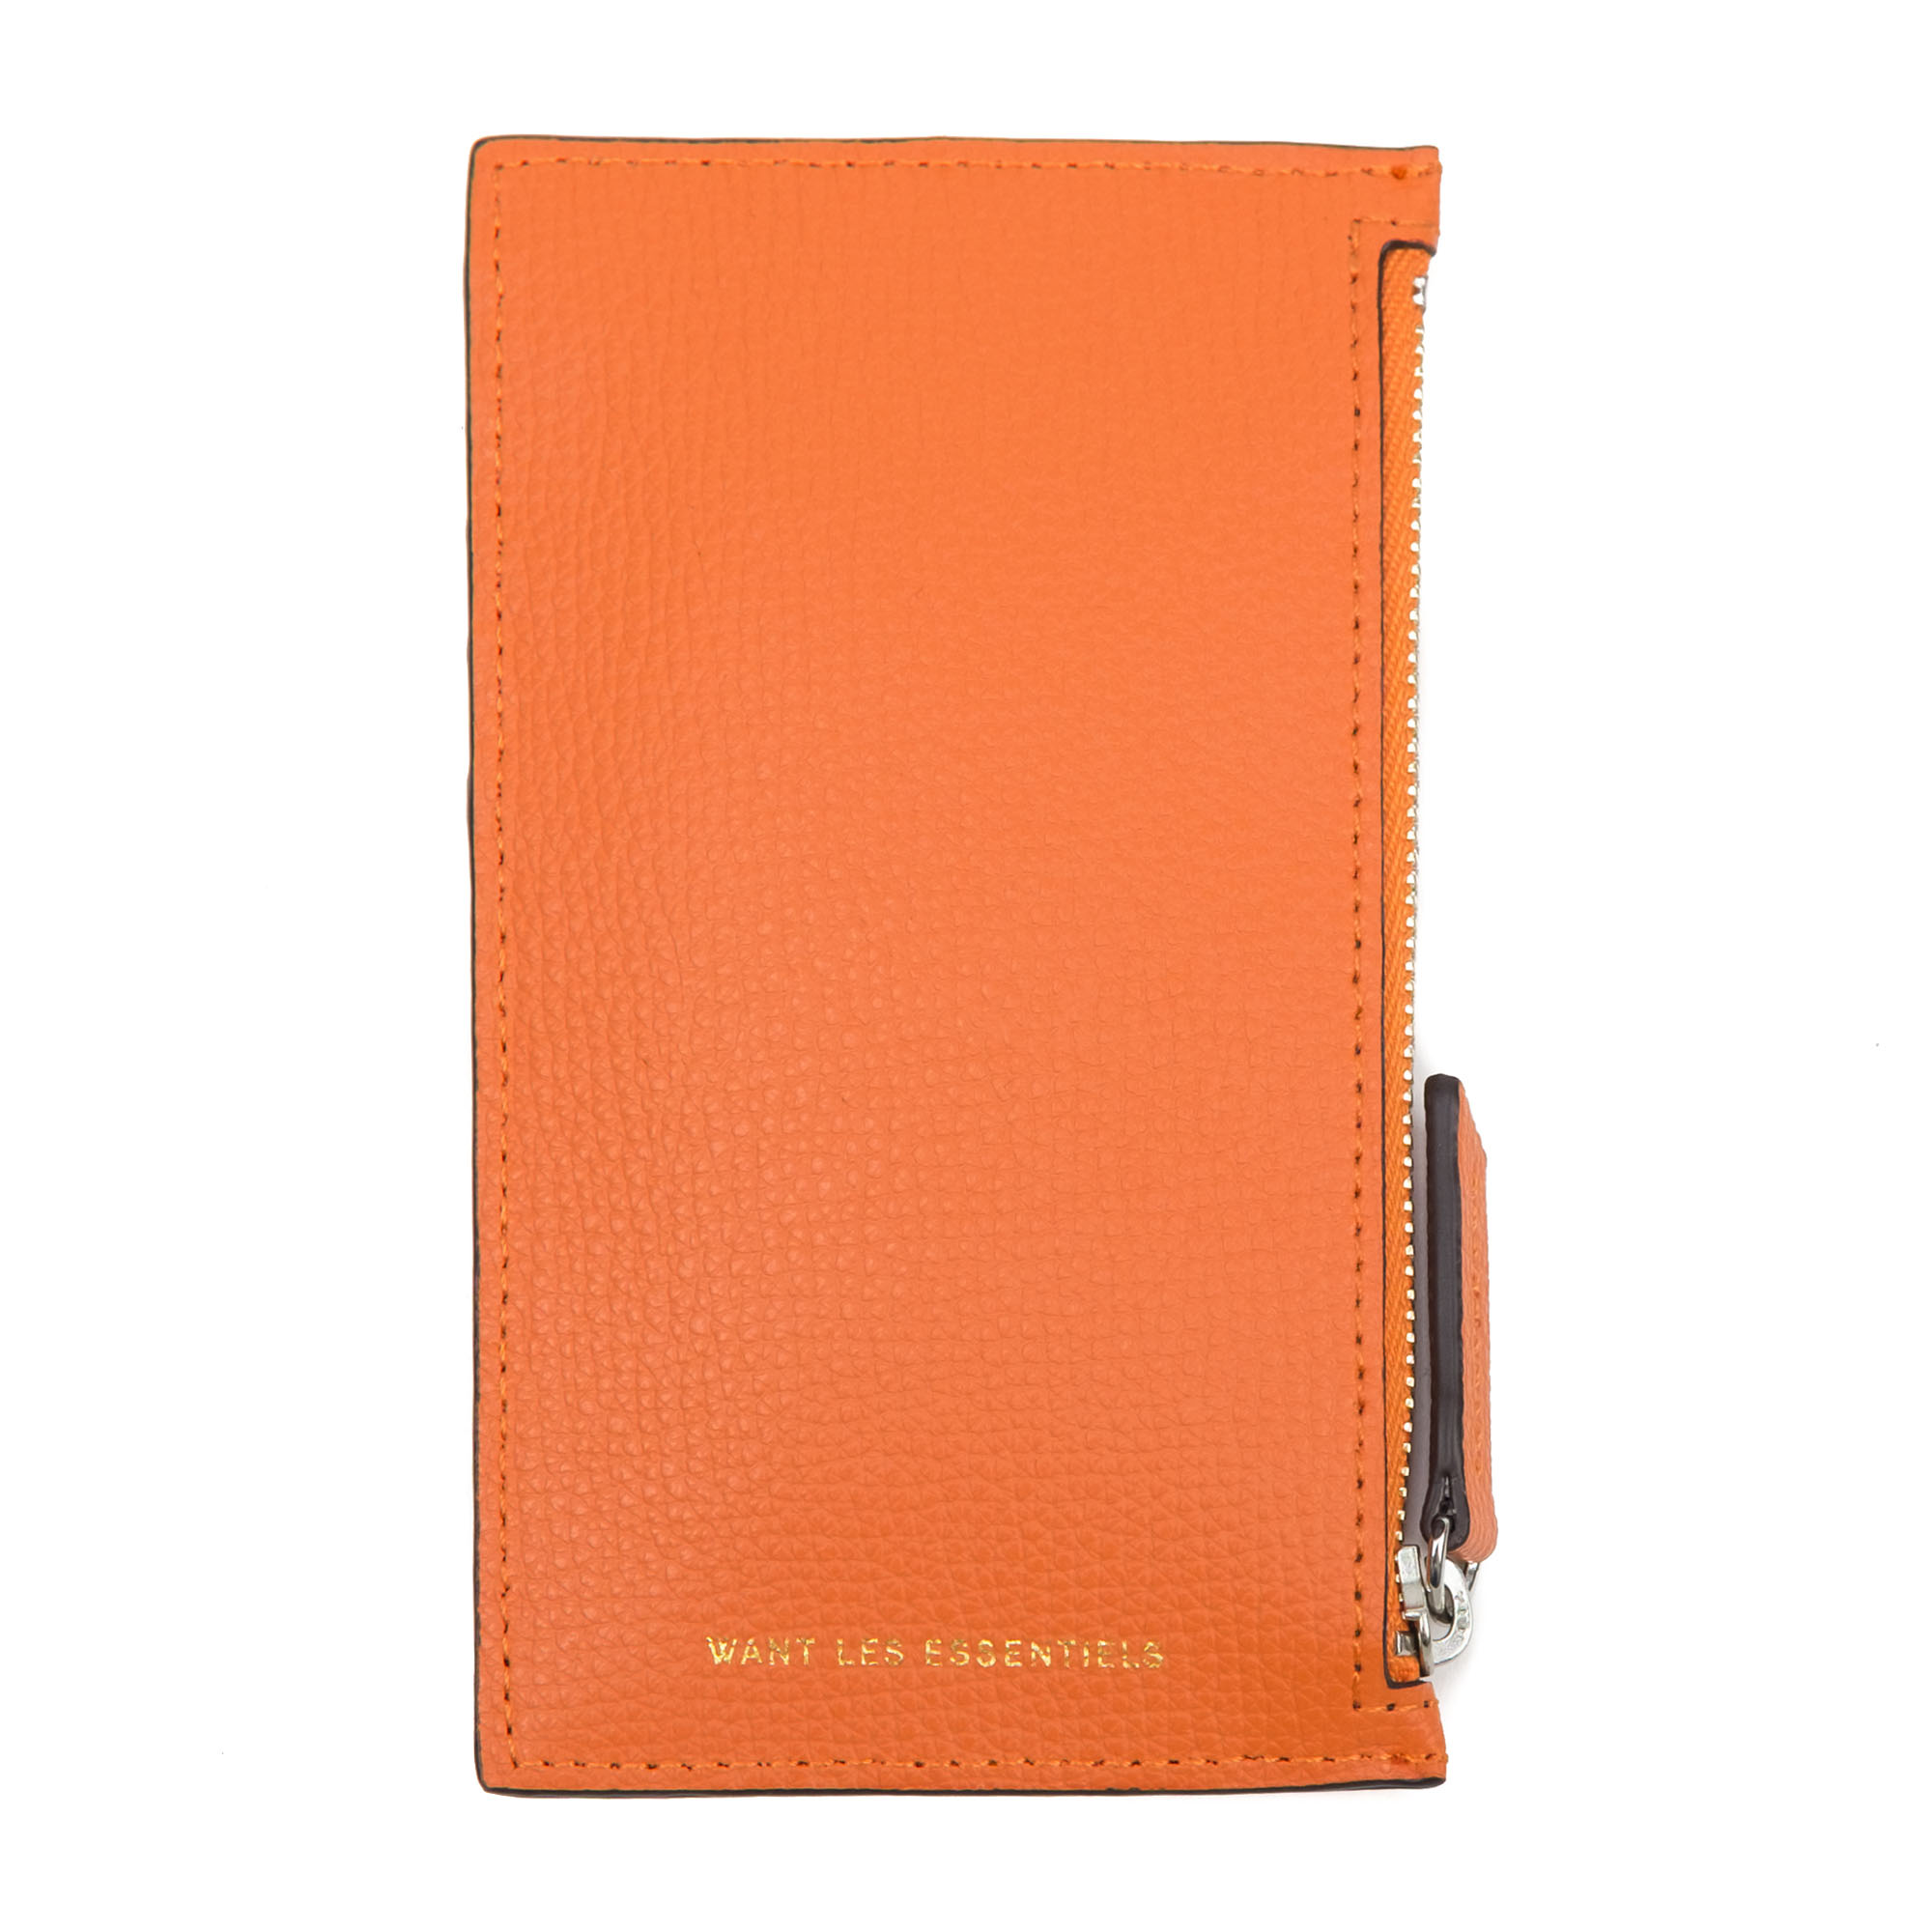 WANT Les Essentiels Adano Zipped Cardholder - Sunset grain